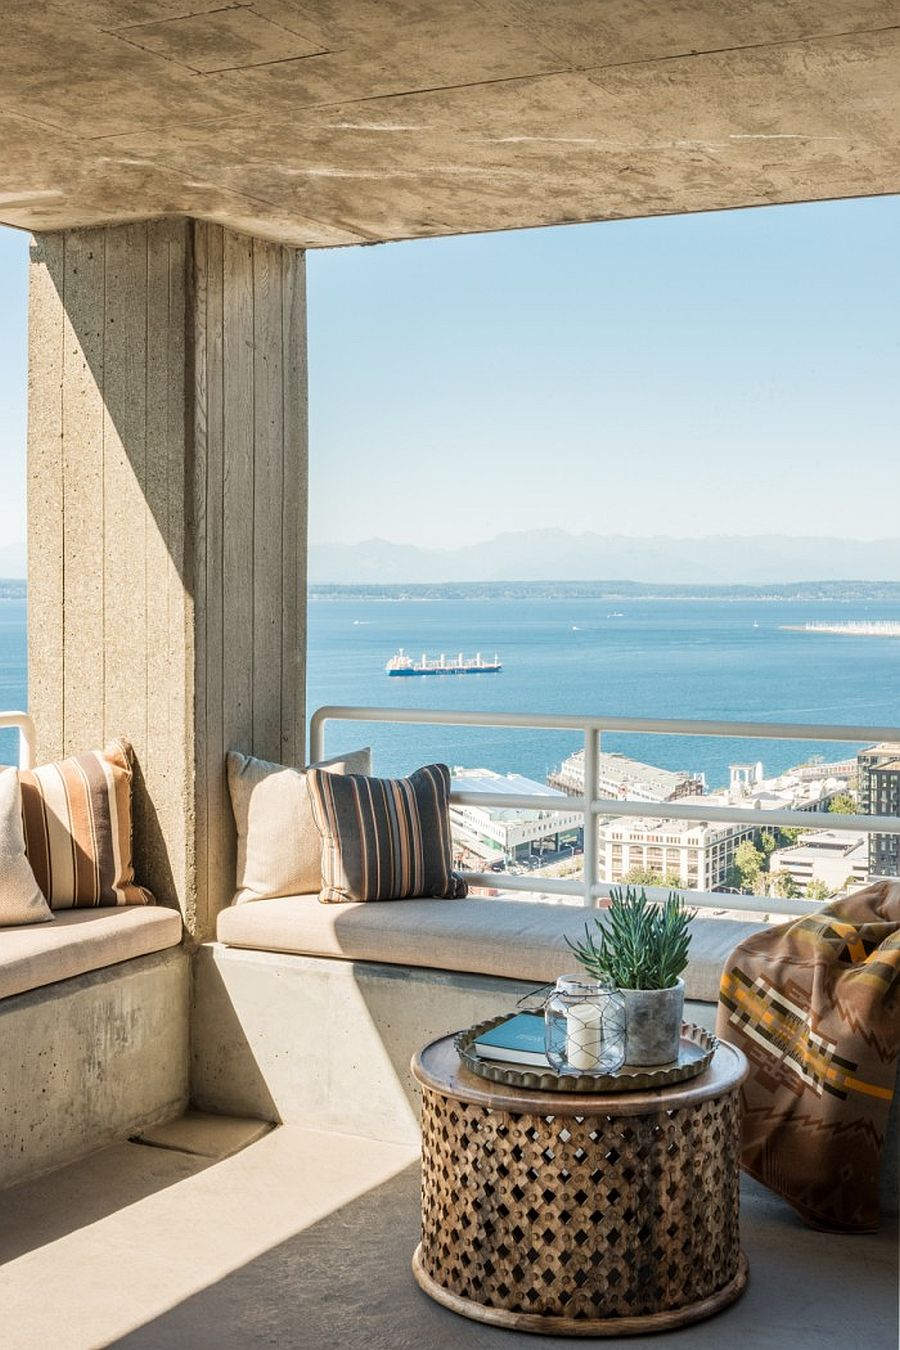 Small-covered-balcony-of-the-apartment-with-amazing-views-of-Olympic-Peninsula-96168